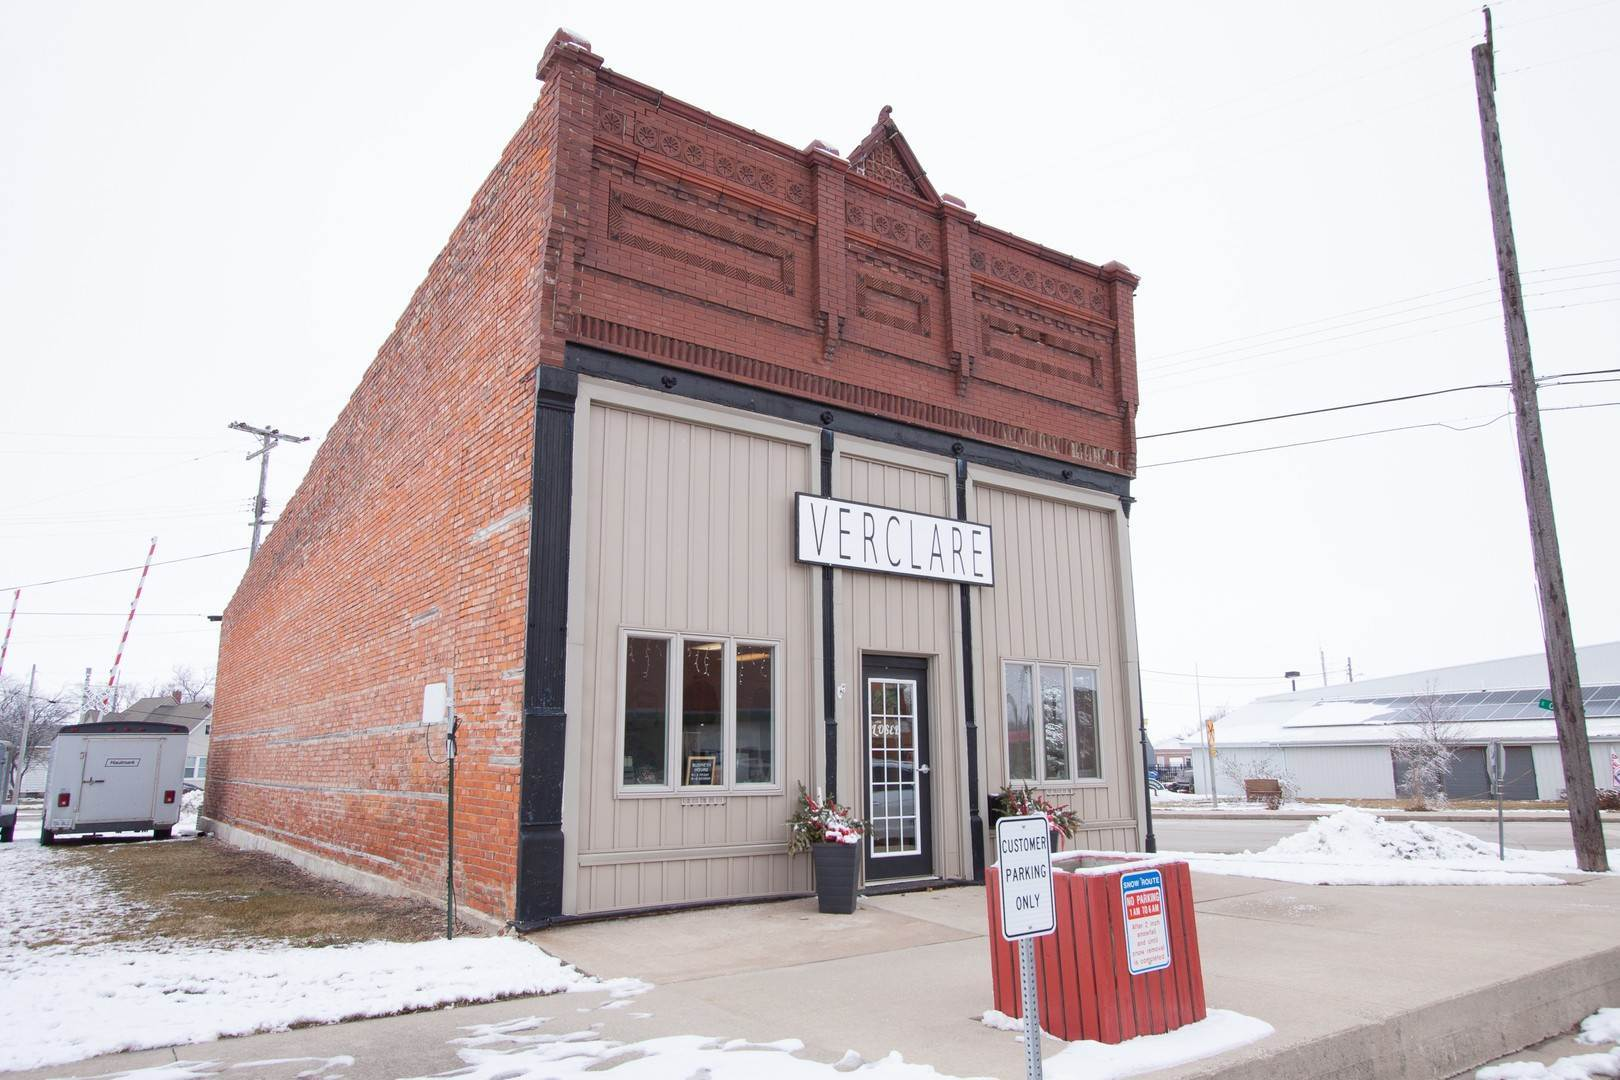 Commercial for Sale at 202 S Veto Street Chenoa, Illinois 61726 United States